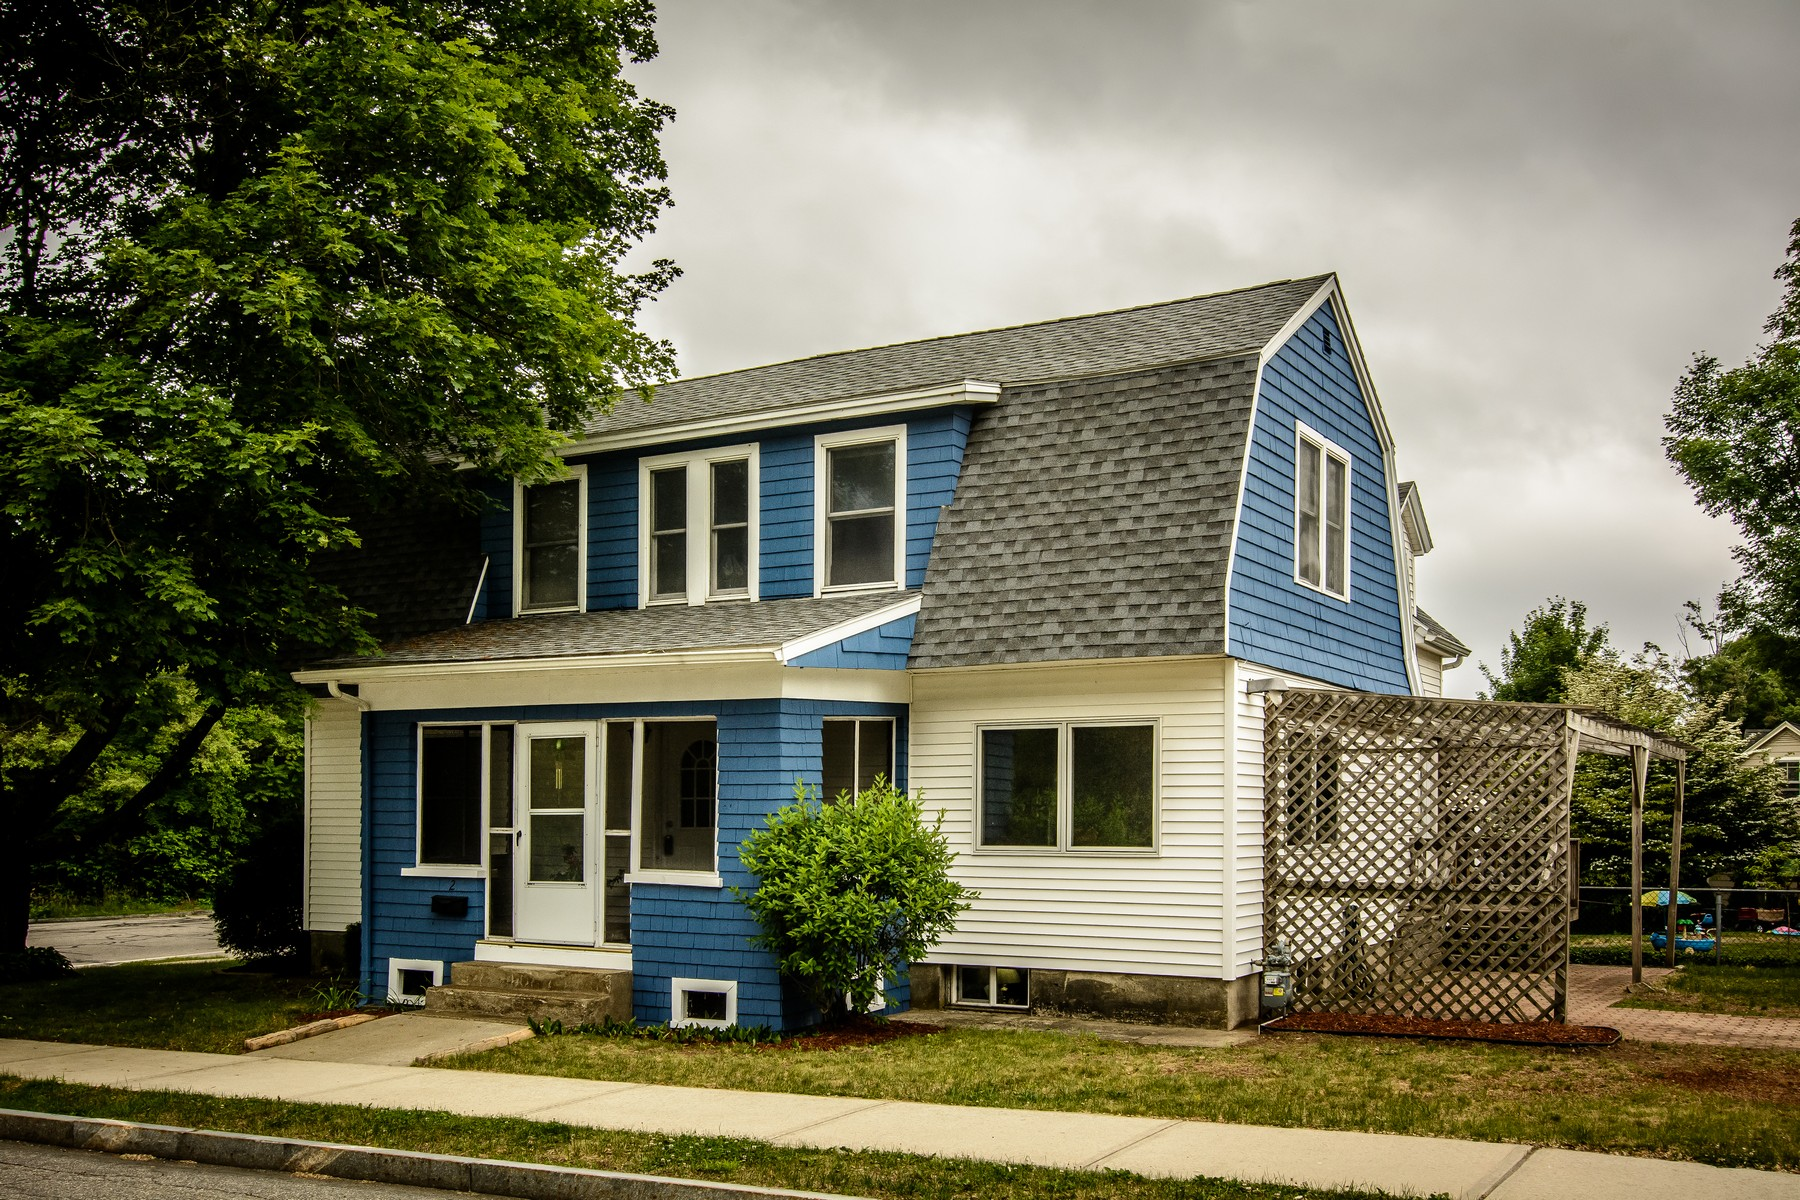 Property For Sale at Charming Dutch Gambrel